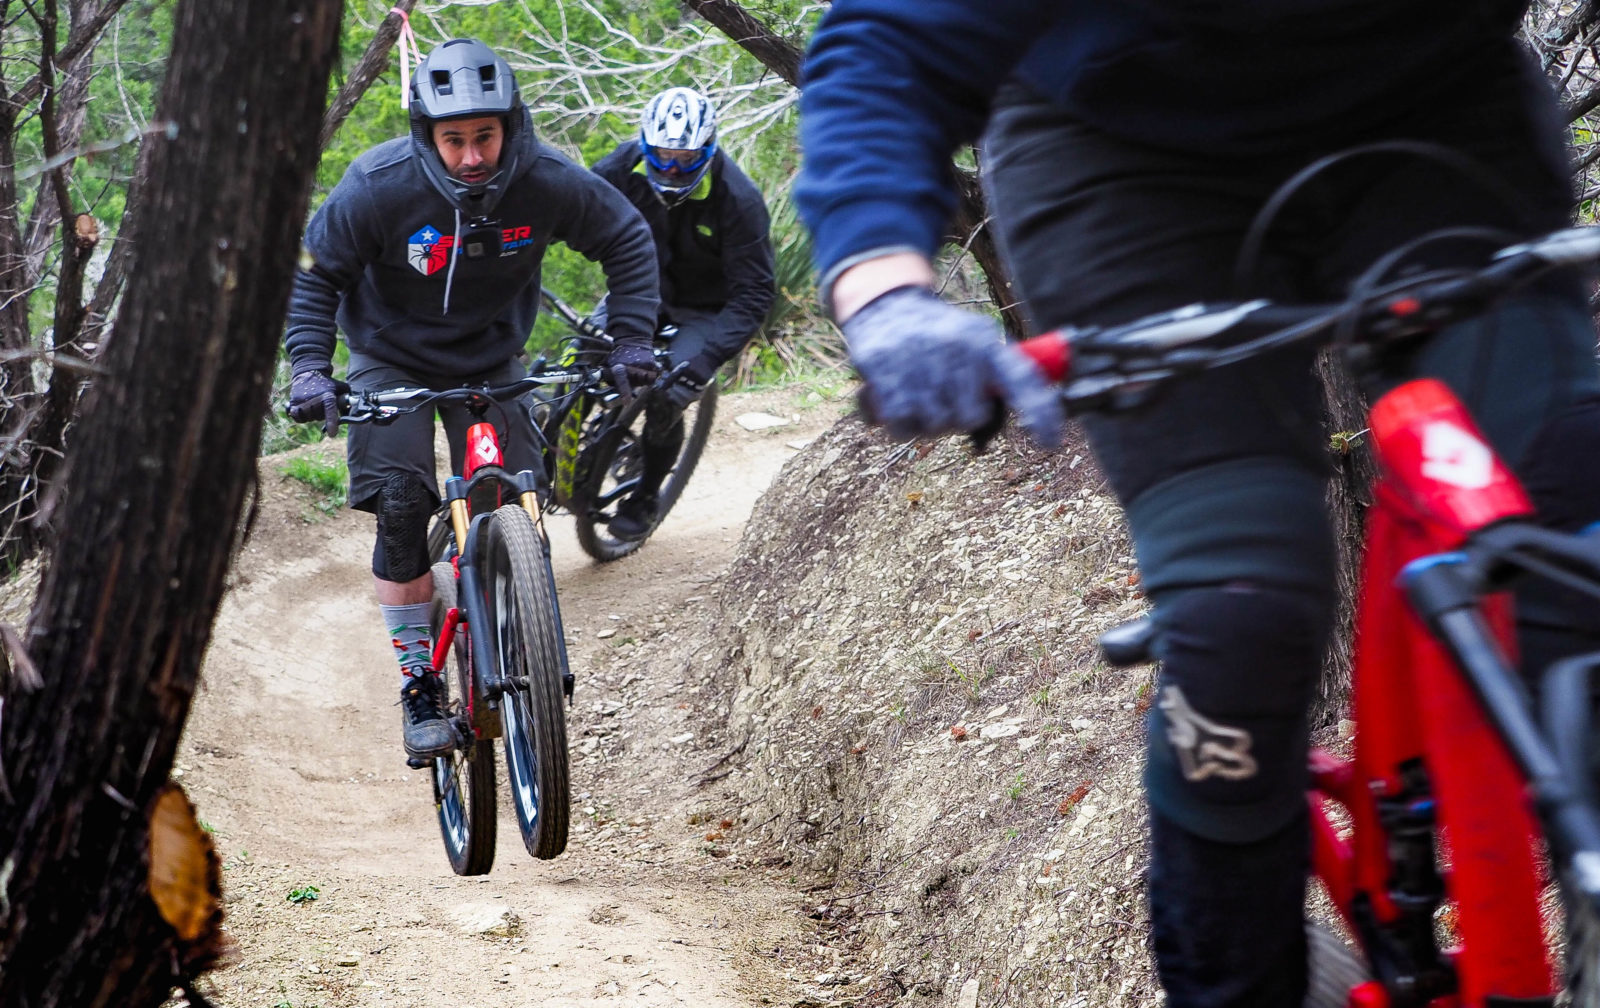 Used means it's had some wear and tear, so be wary. Spider Mountain Bike Park Suspends Operations During Pandemic Pam Leblanc Adventures